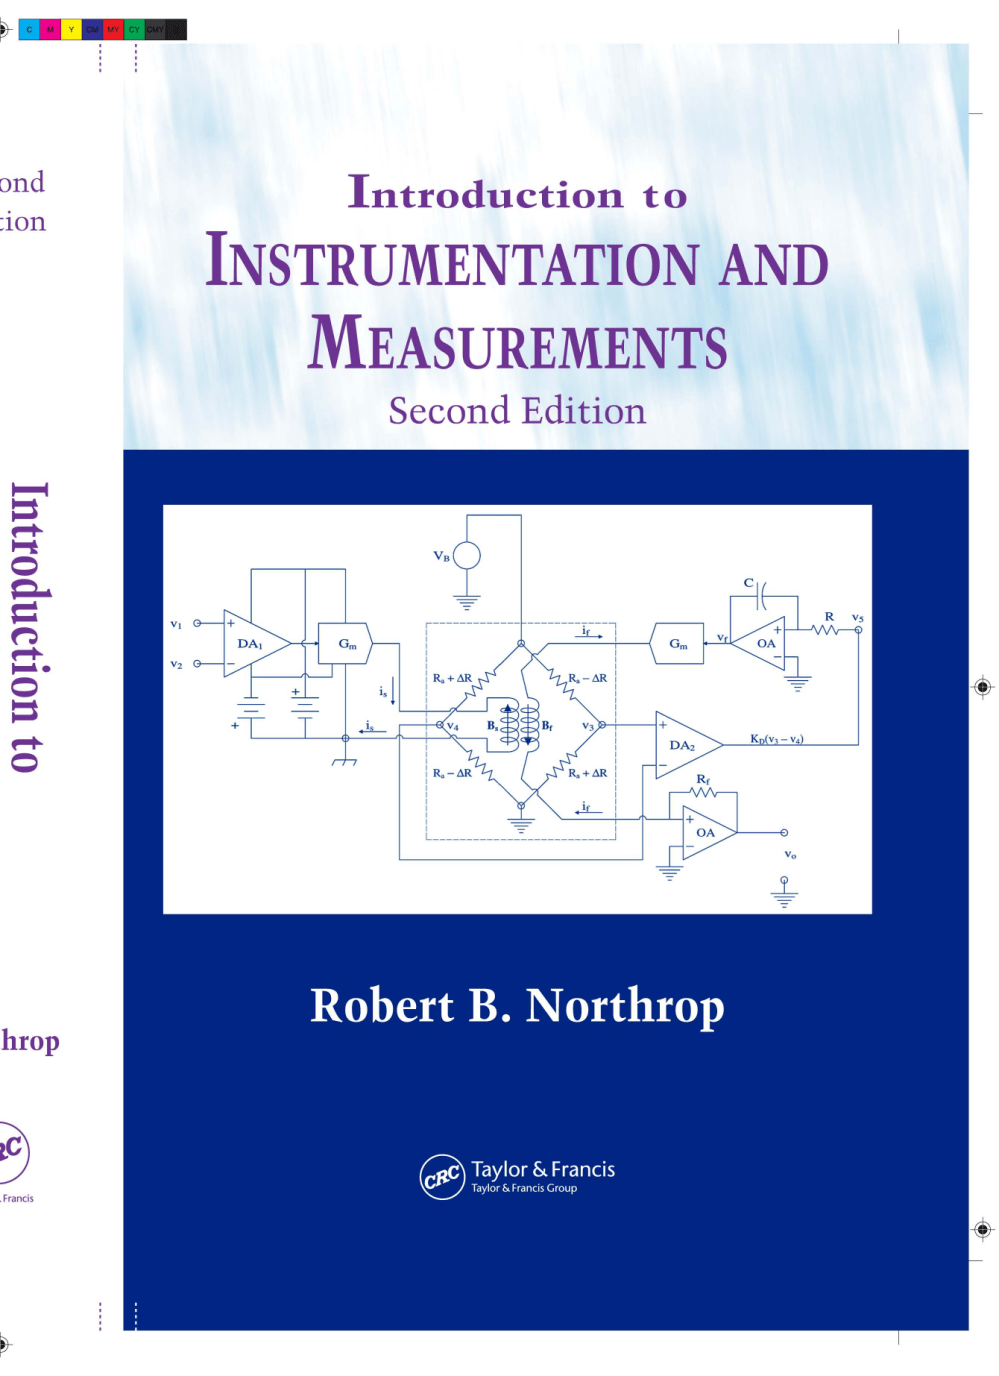 medium resolution of introduction to instrumentation and measurements